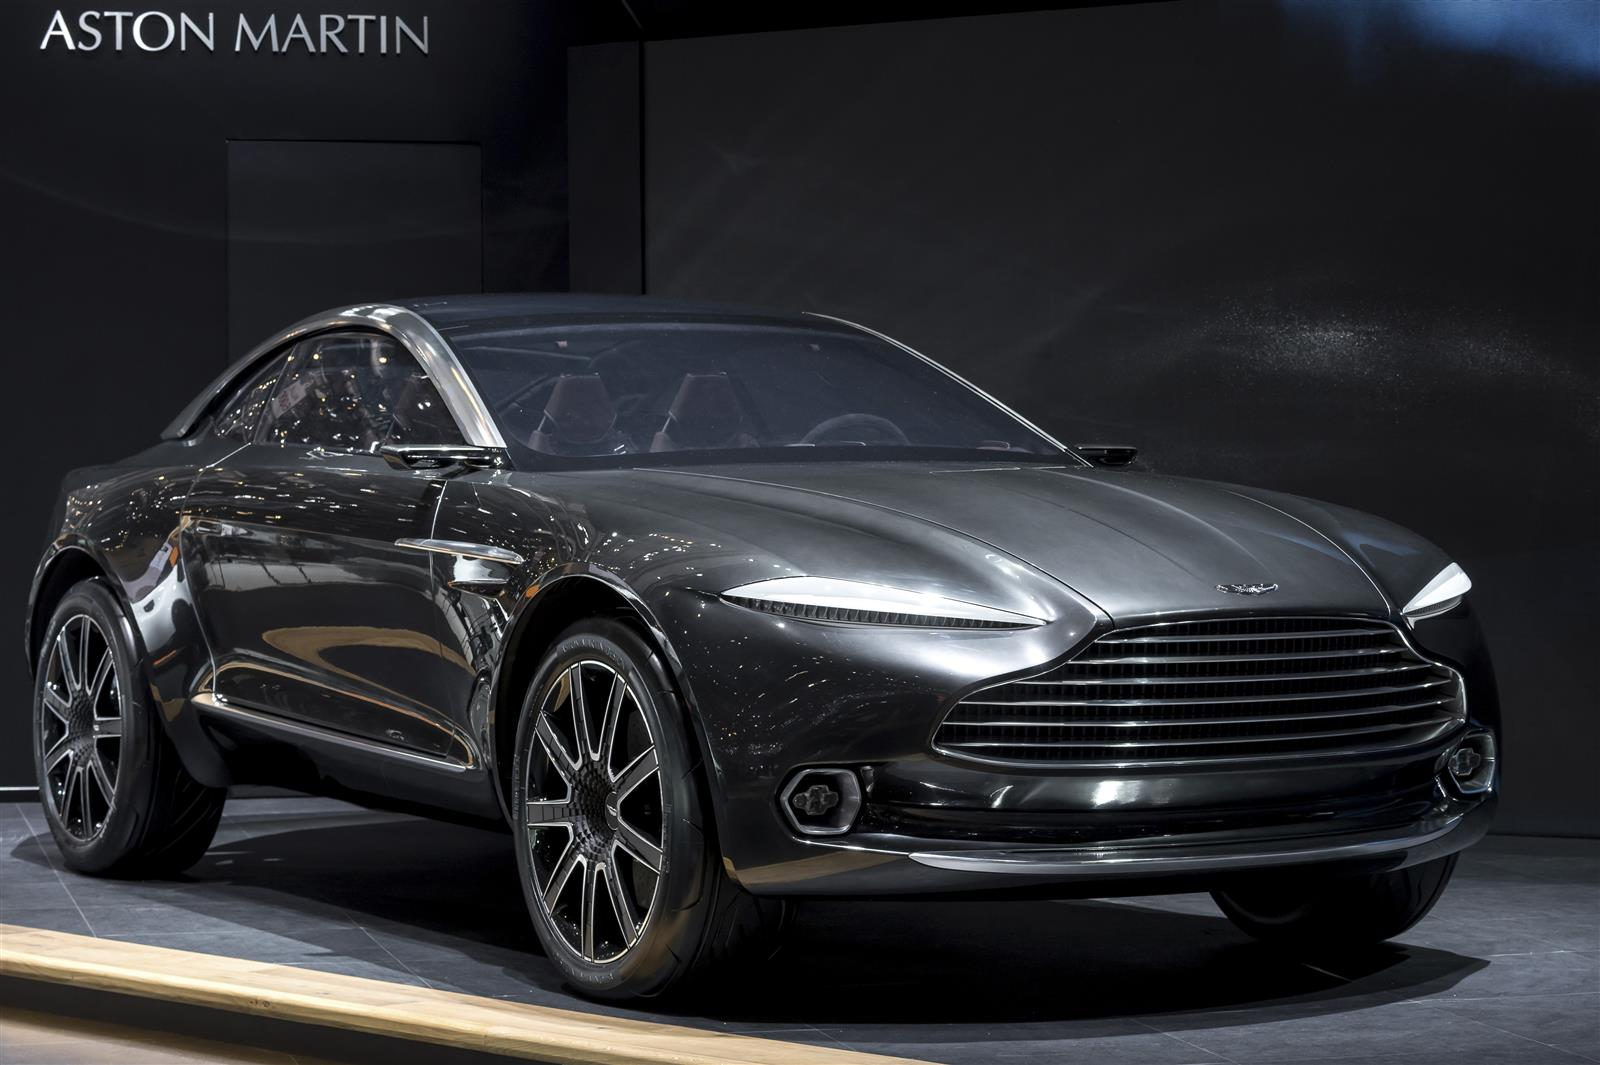 aston martin dbx crossover to launch with gas engines and cameras for side mirrors the drive. Black Bedroom Furniture Sets. Home Design Ideas